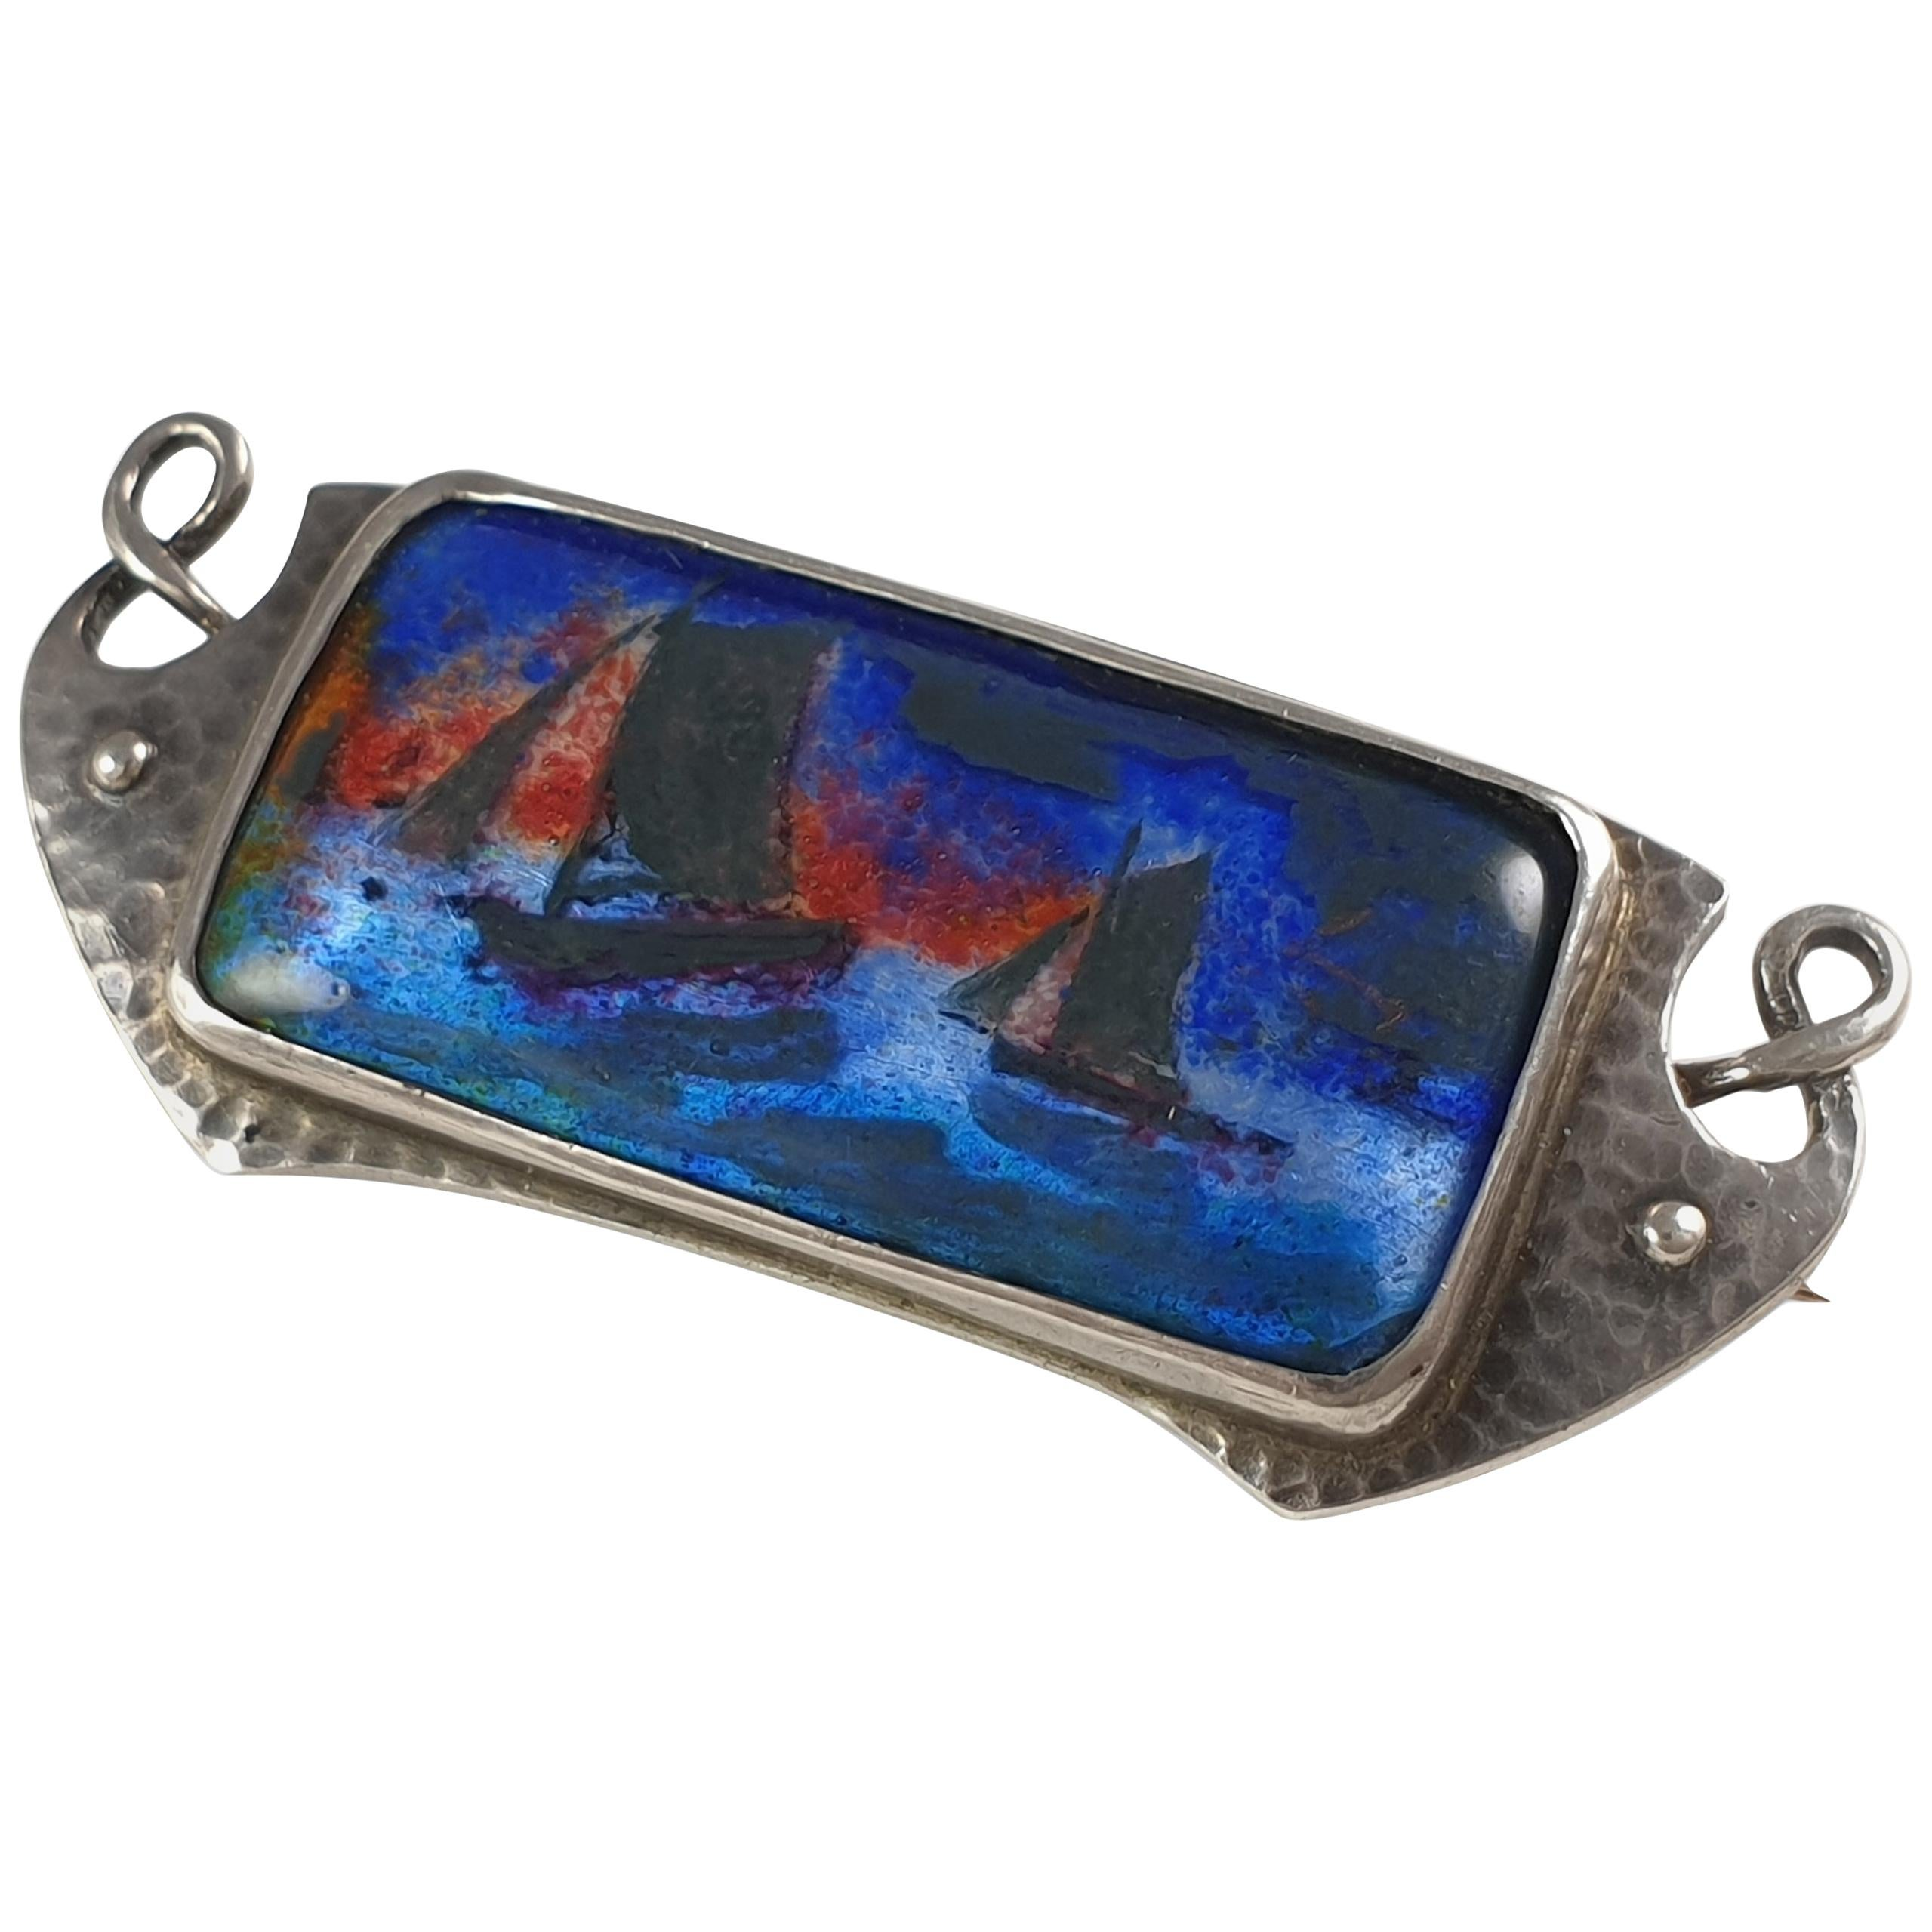 Arts & Crafts Silver and Enamel Plaque Brooch, Murrle Bennett & Co., circa 1910